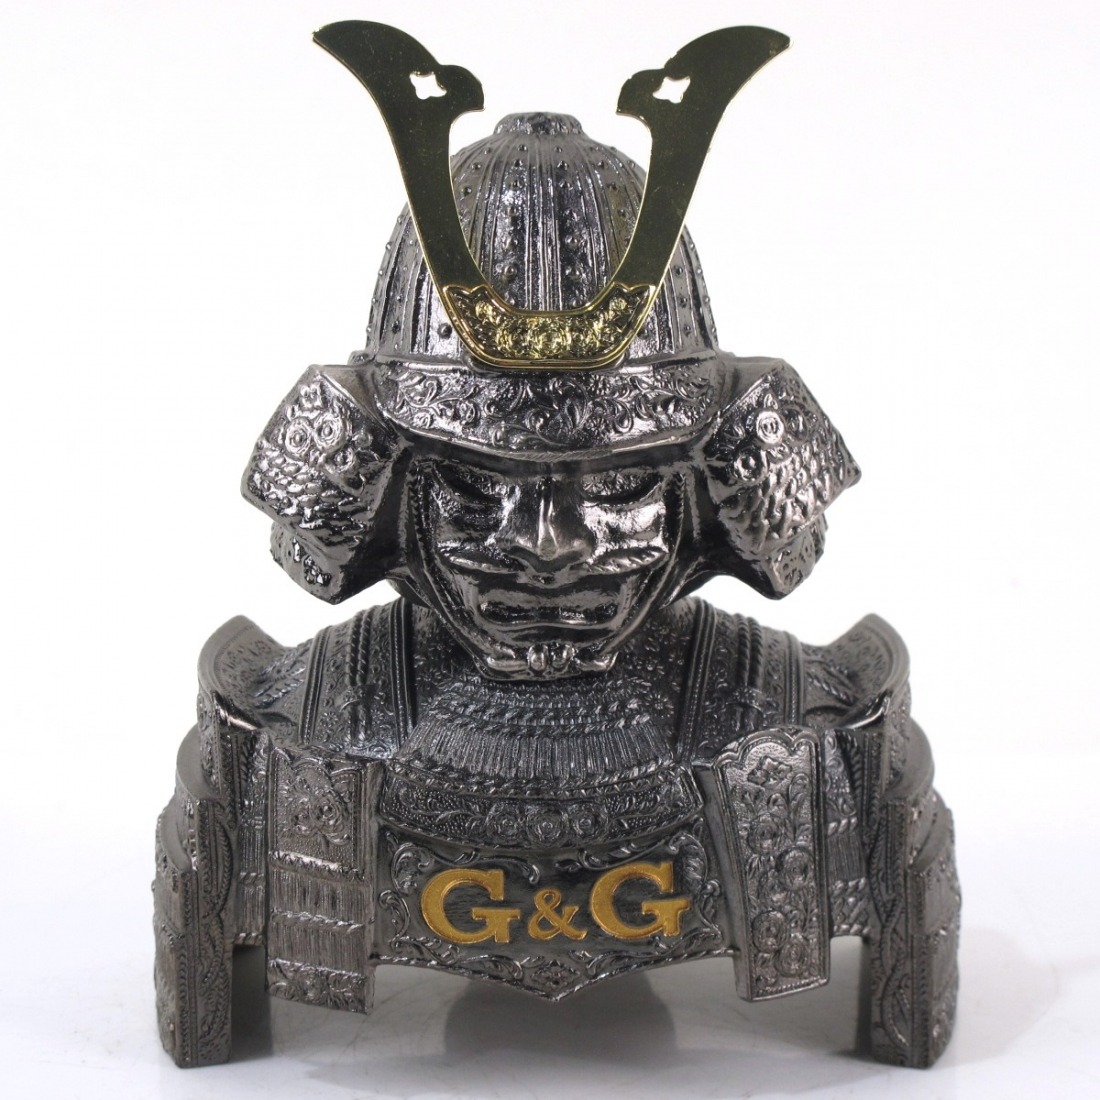 Nikka Gold and Gold Samurai Ornamental Top